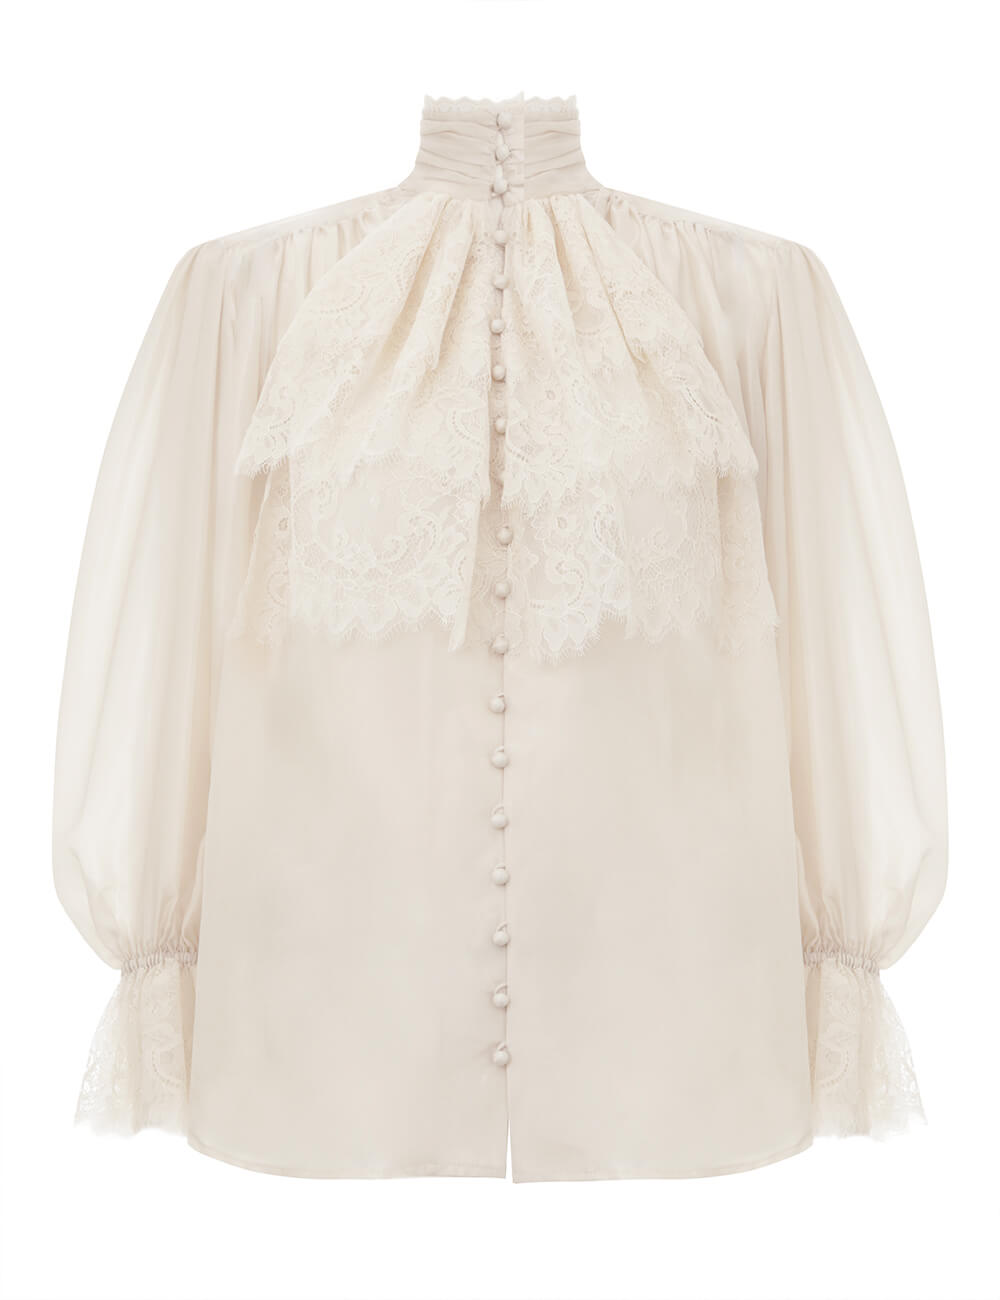 Verity Lace High Neck Shirt